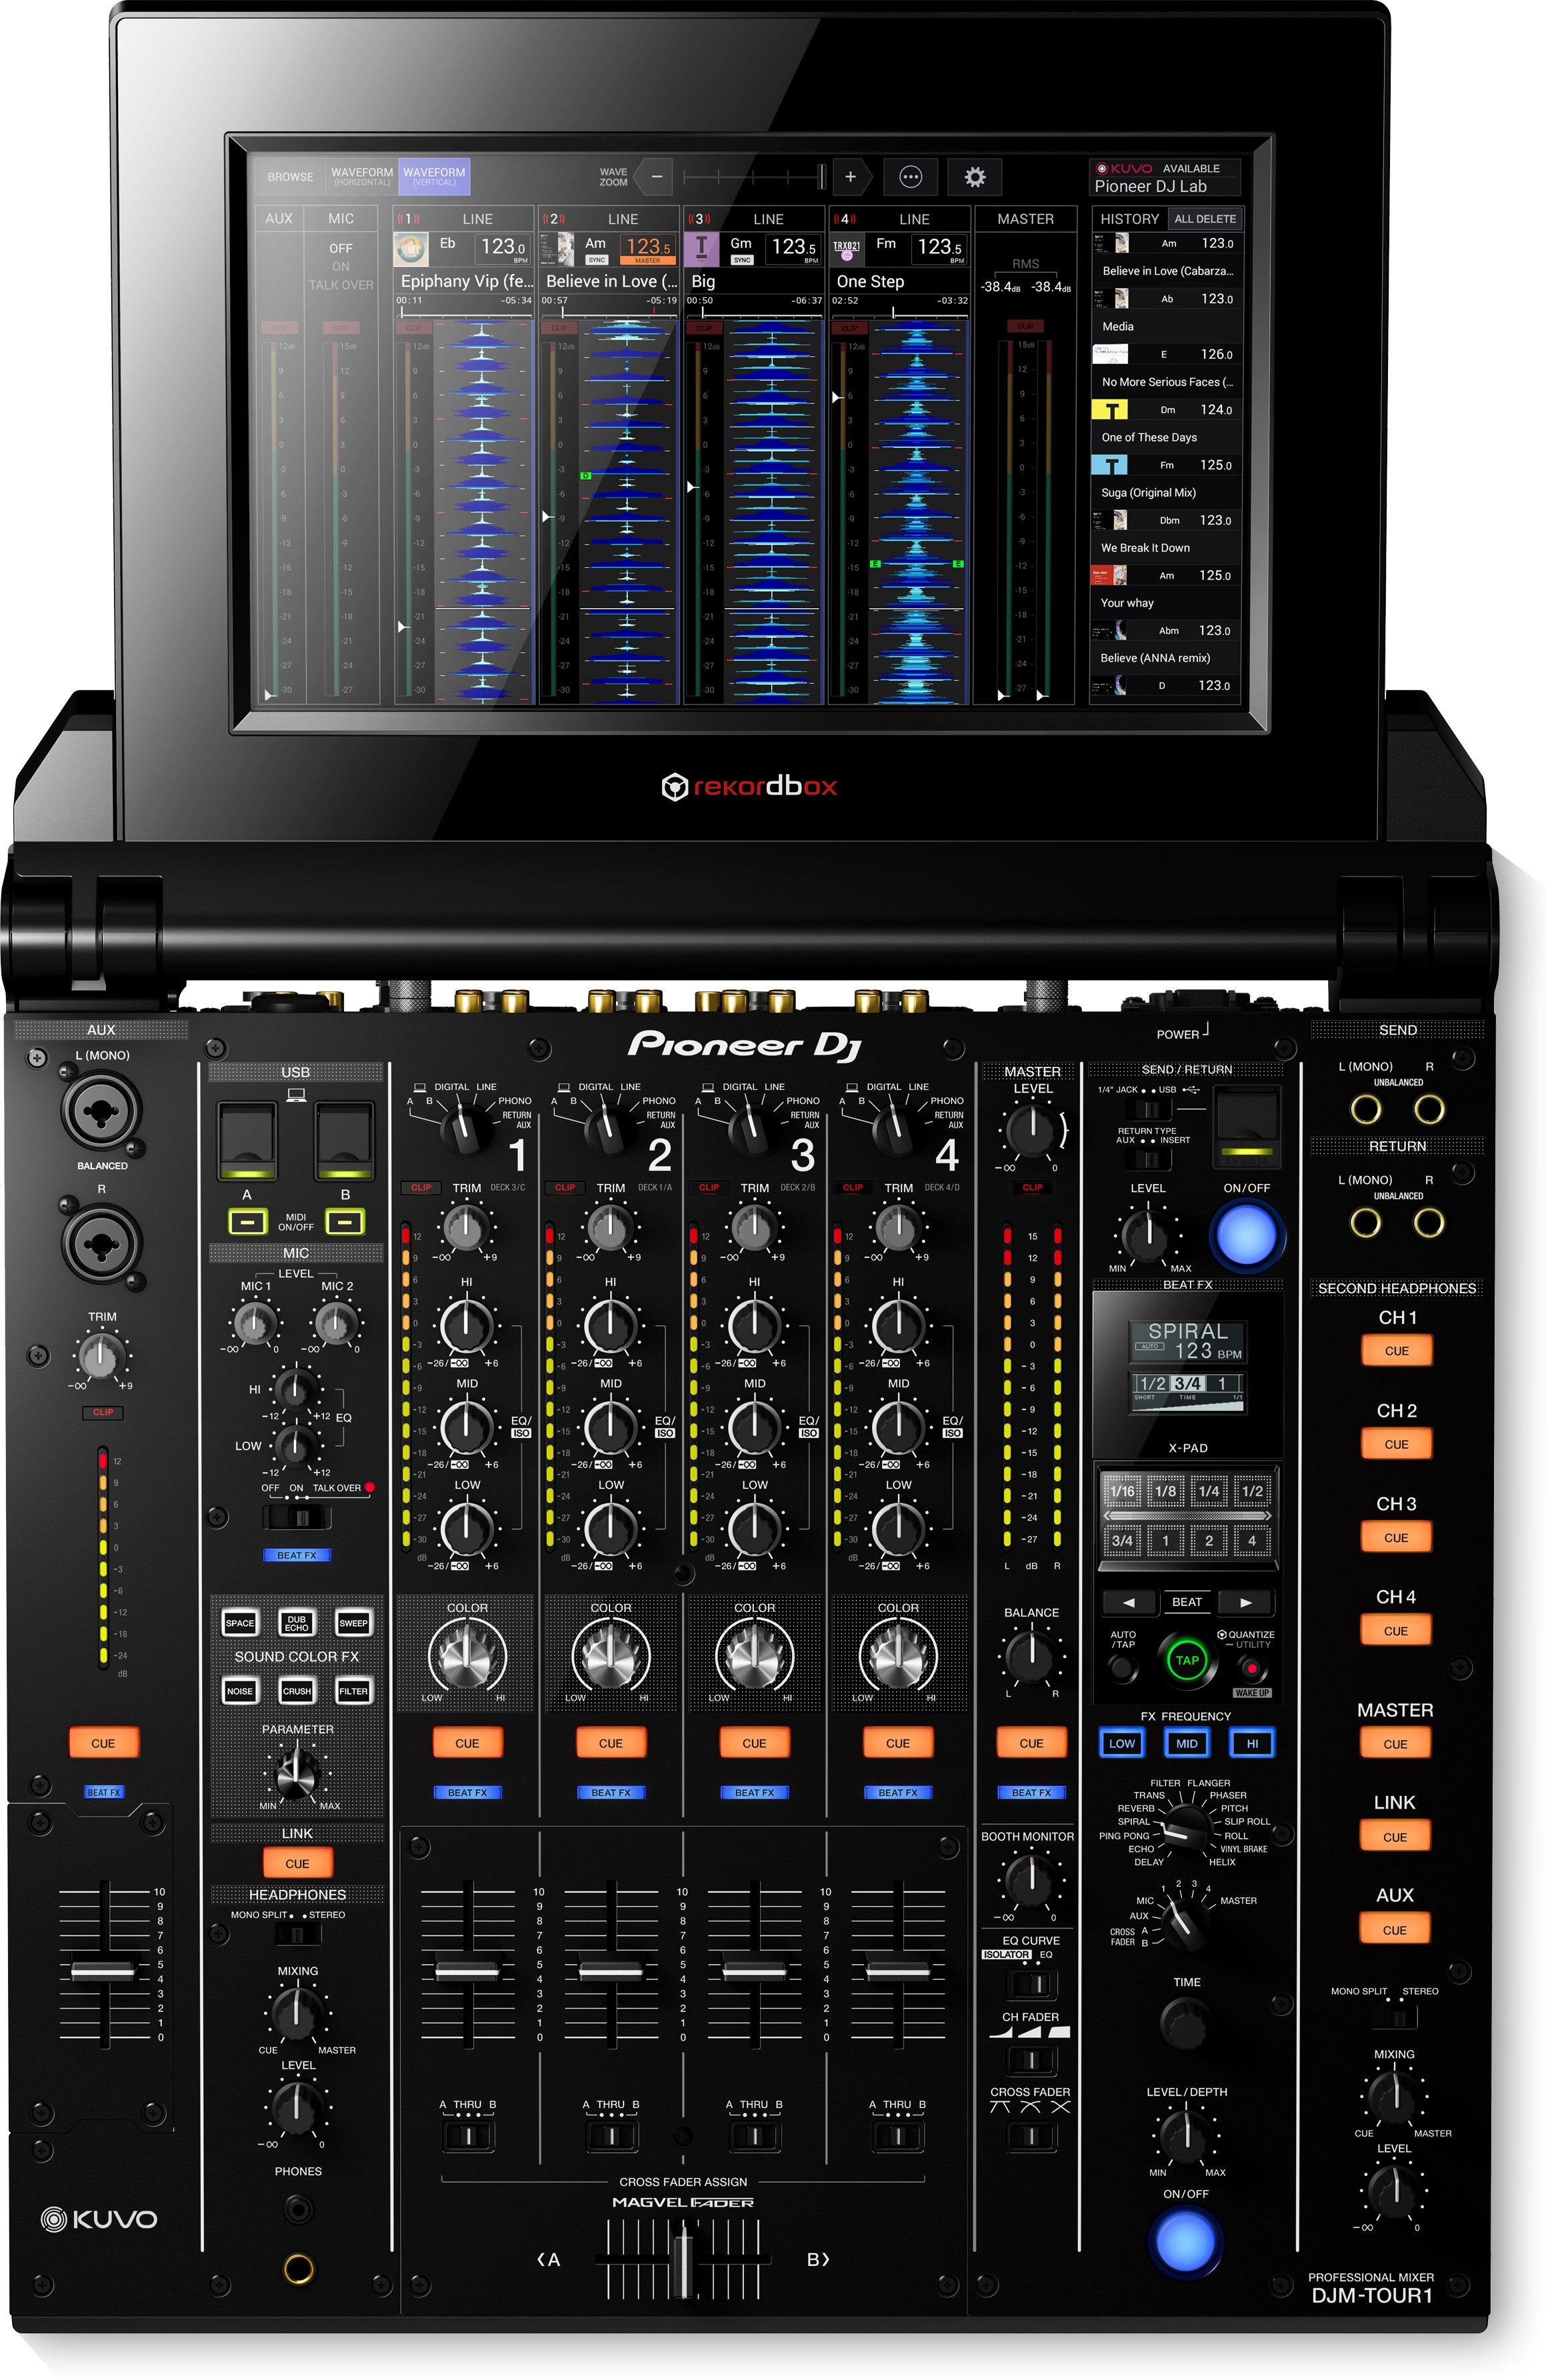 djm tour1 tour system 4 channel digital mixer with fold out touch screen black pioneer dj. Black Bedroom Furniture Sets. Home Design Ideas